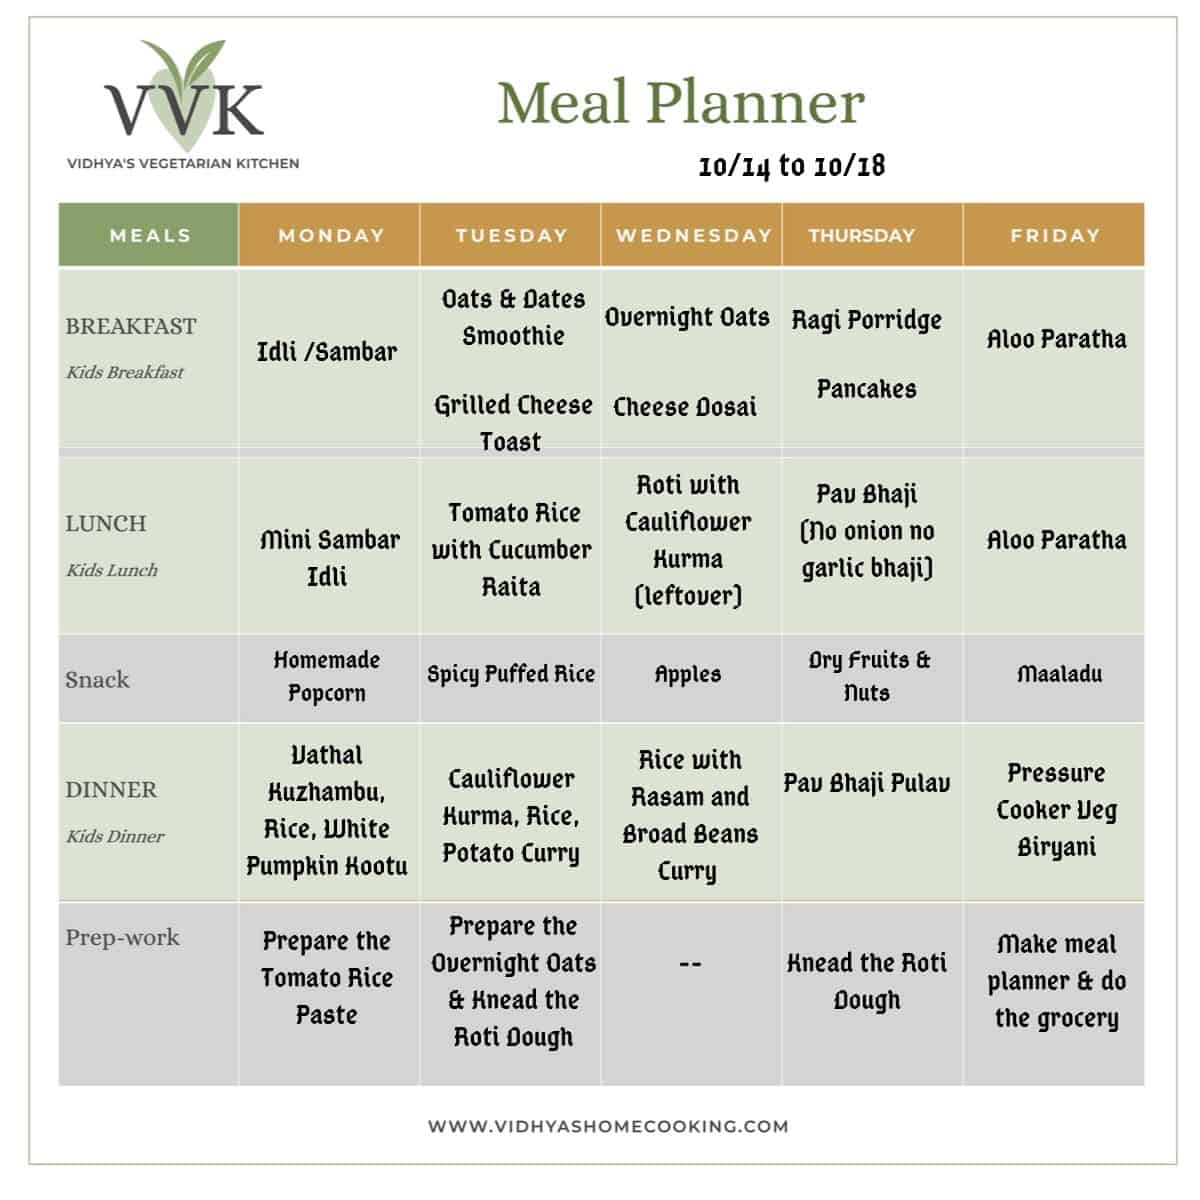 meal planner 1014 1018